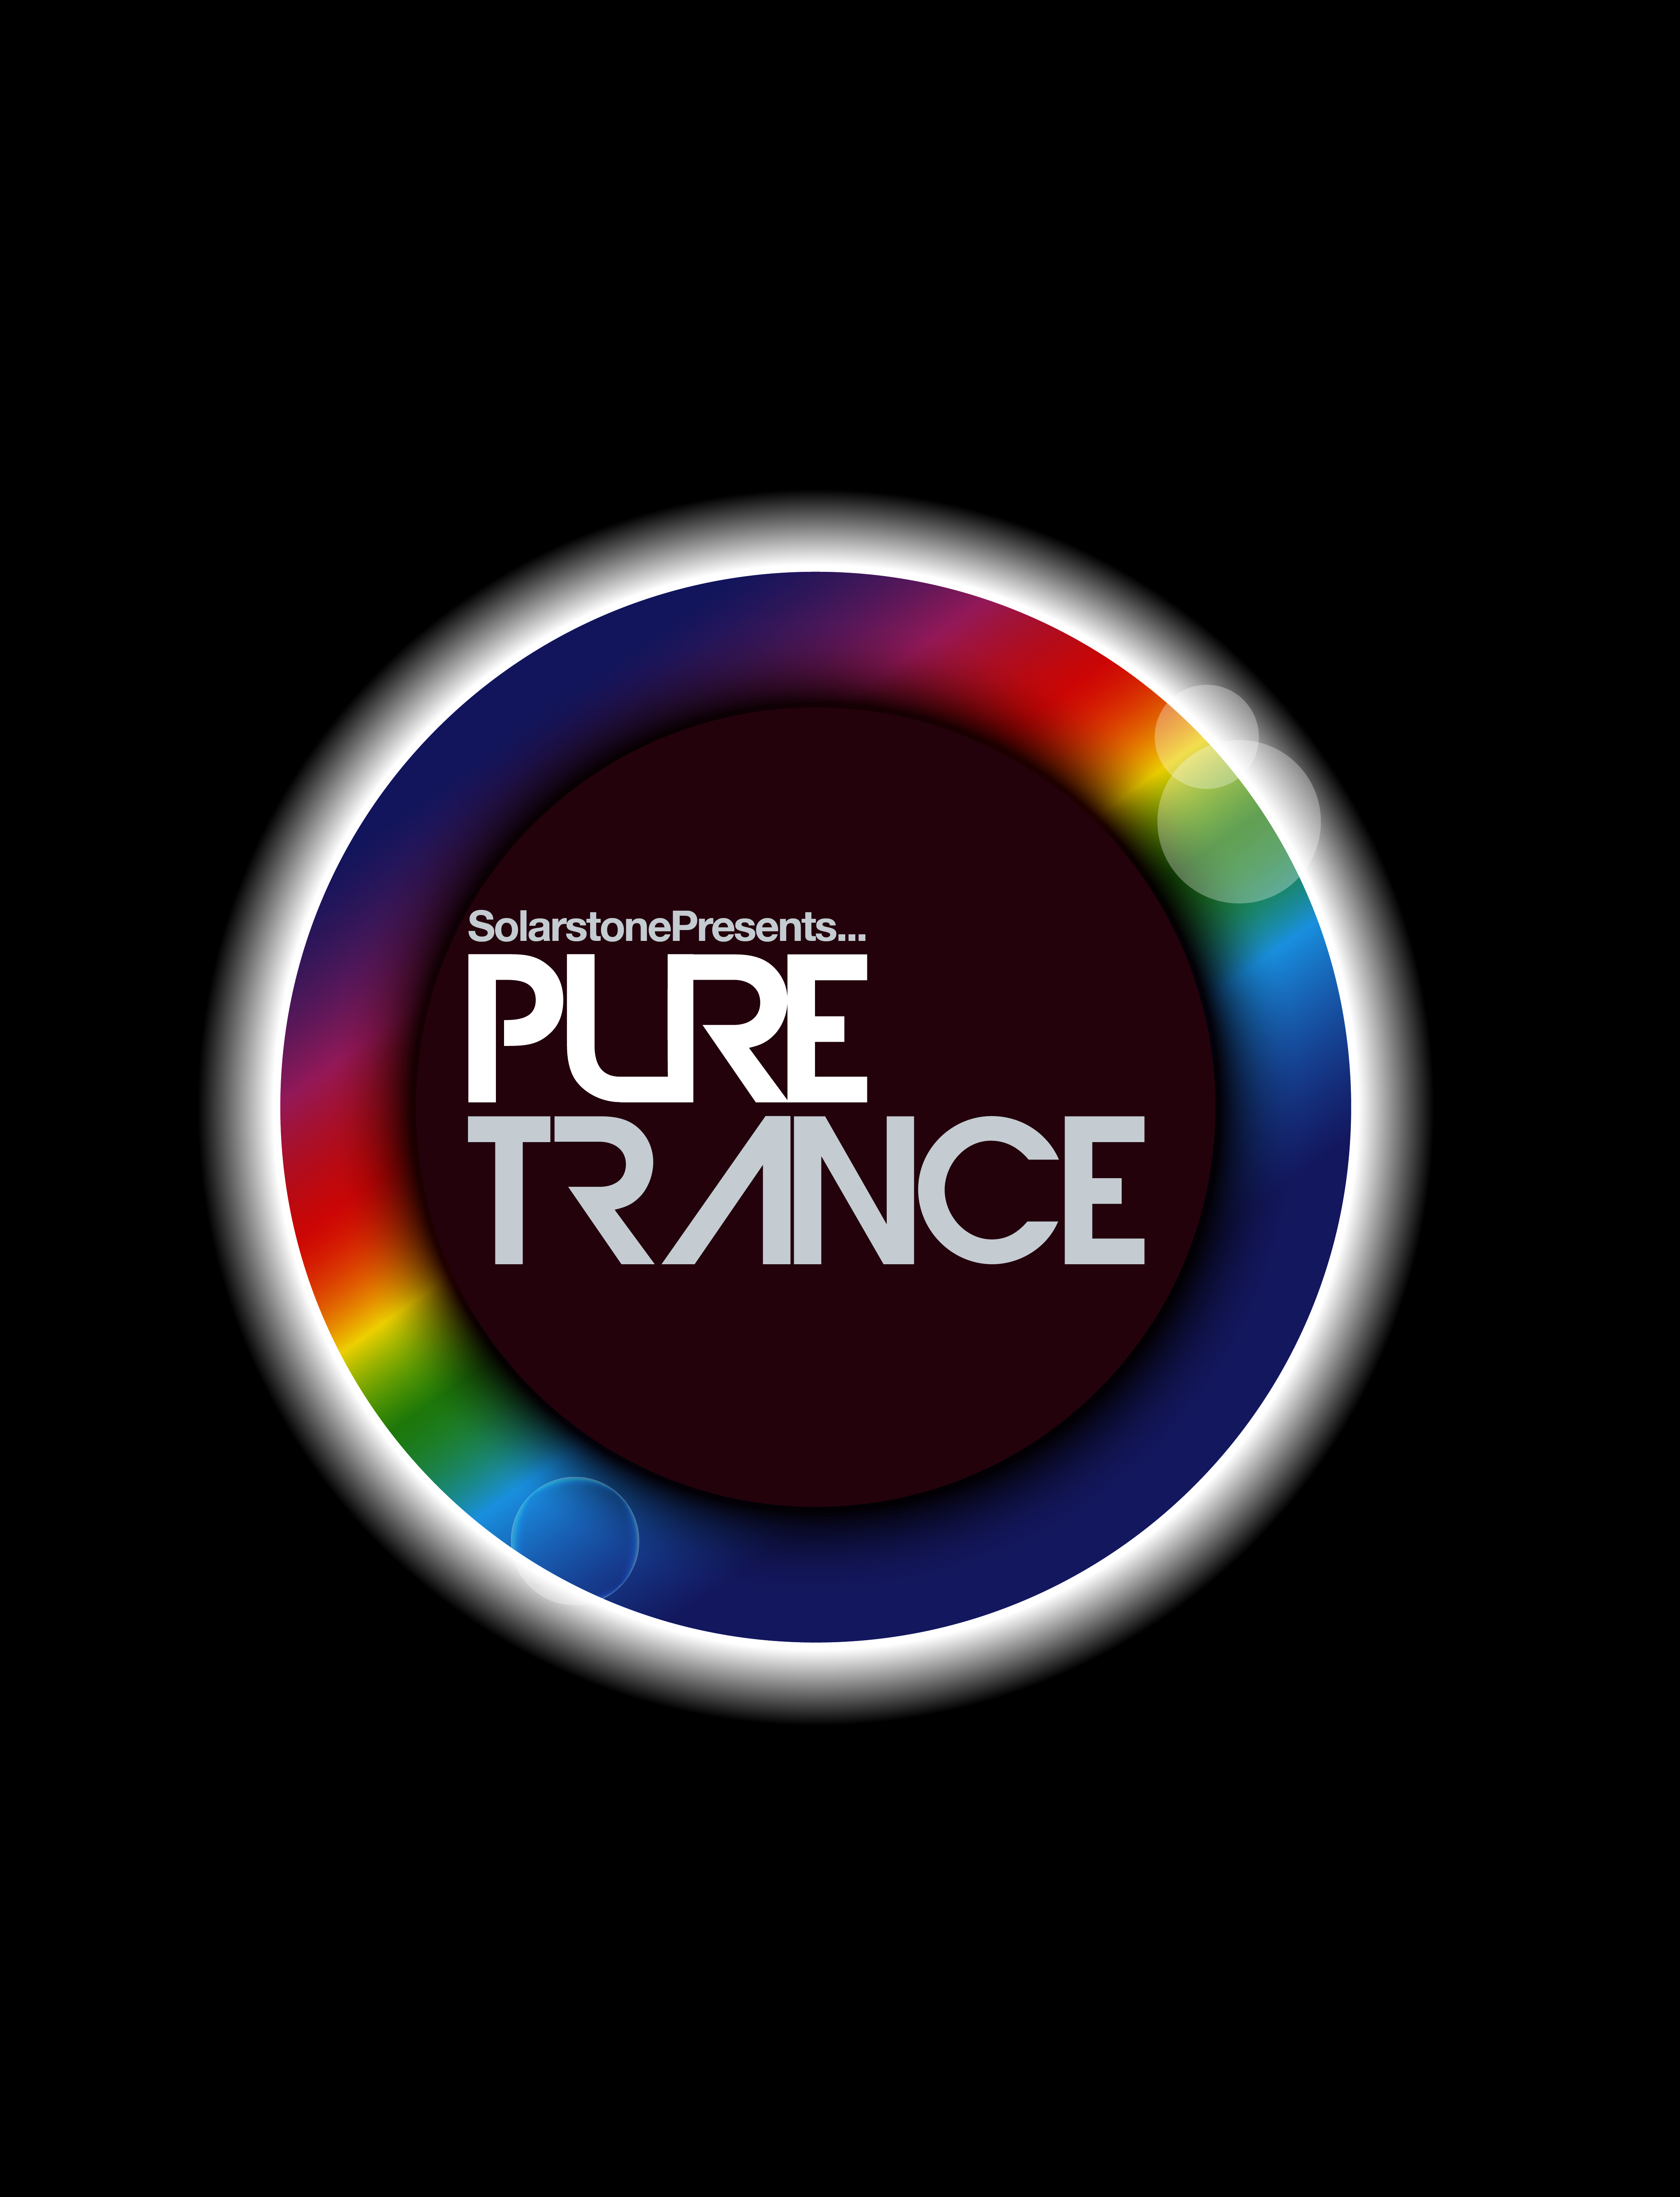 Trance Wallpapers